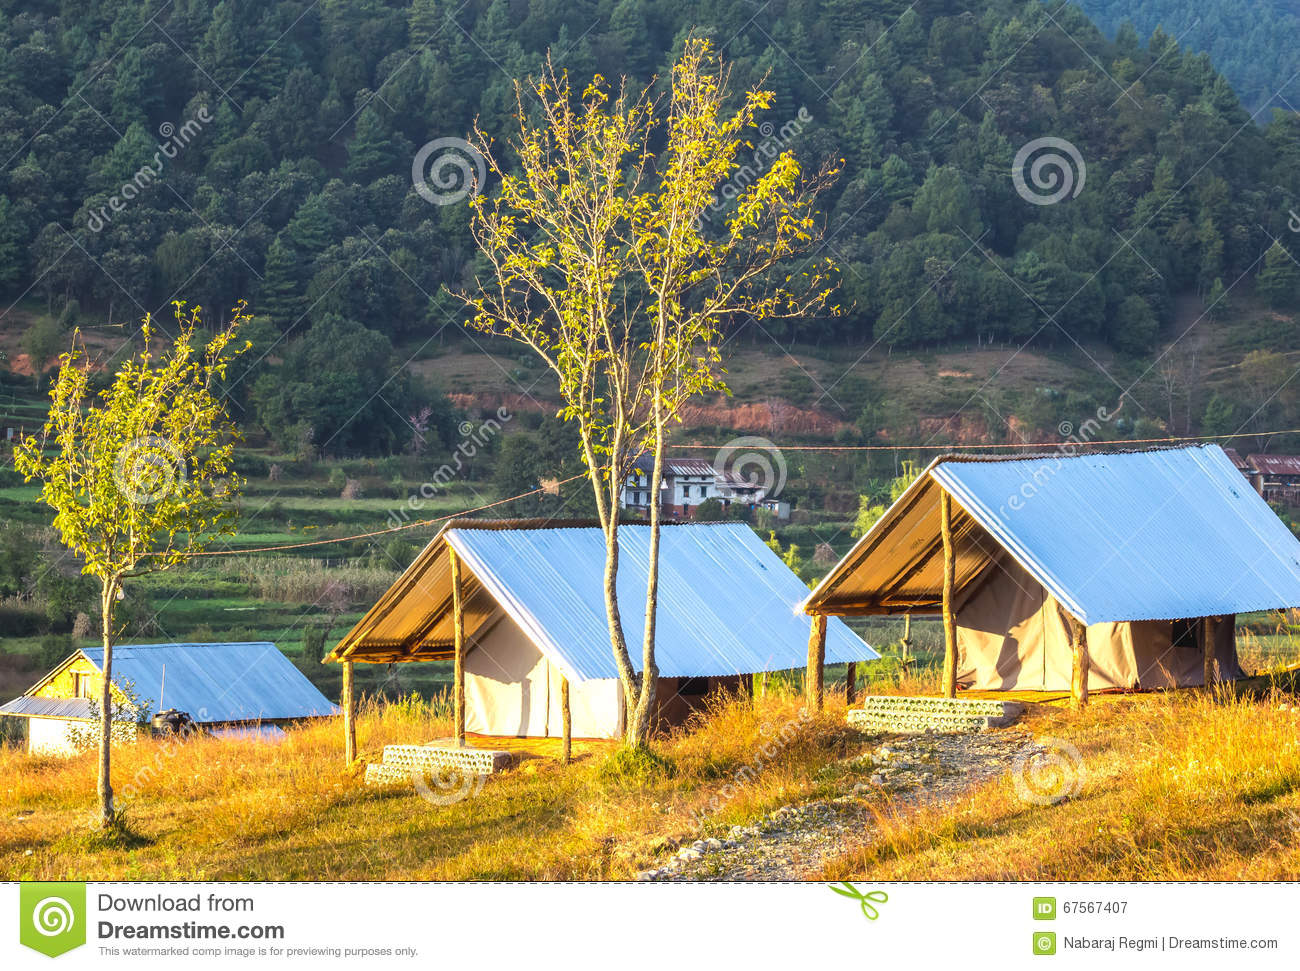 Tent house in Nepal & Tent house in Nepal stock image. Image of hiking building - 67567407